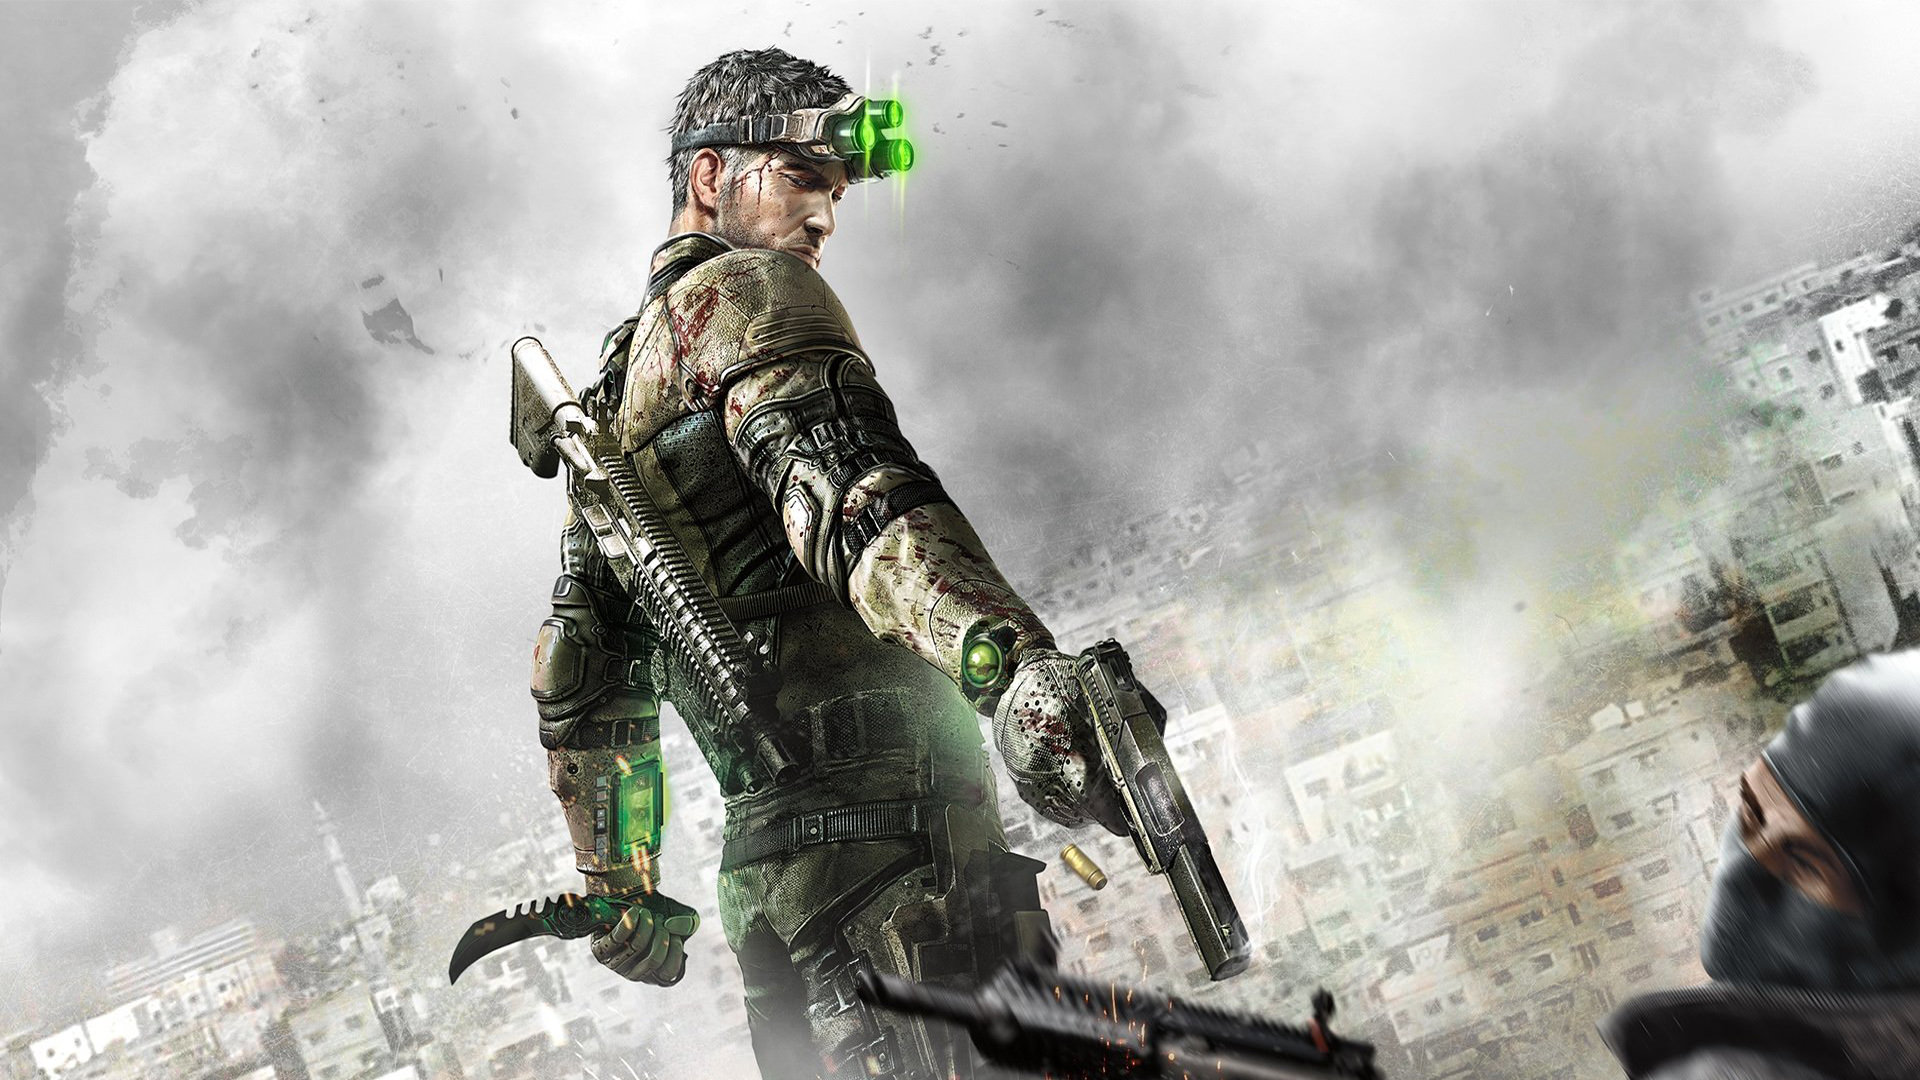 Splinter Cell: Blacklist